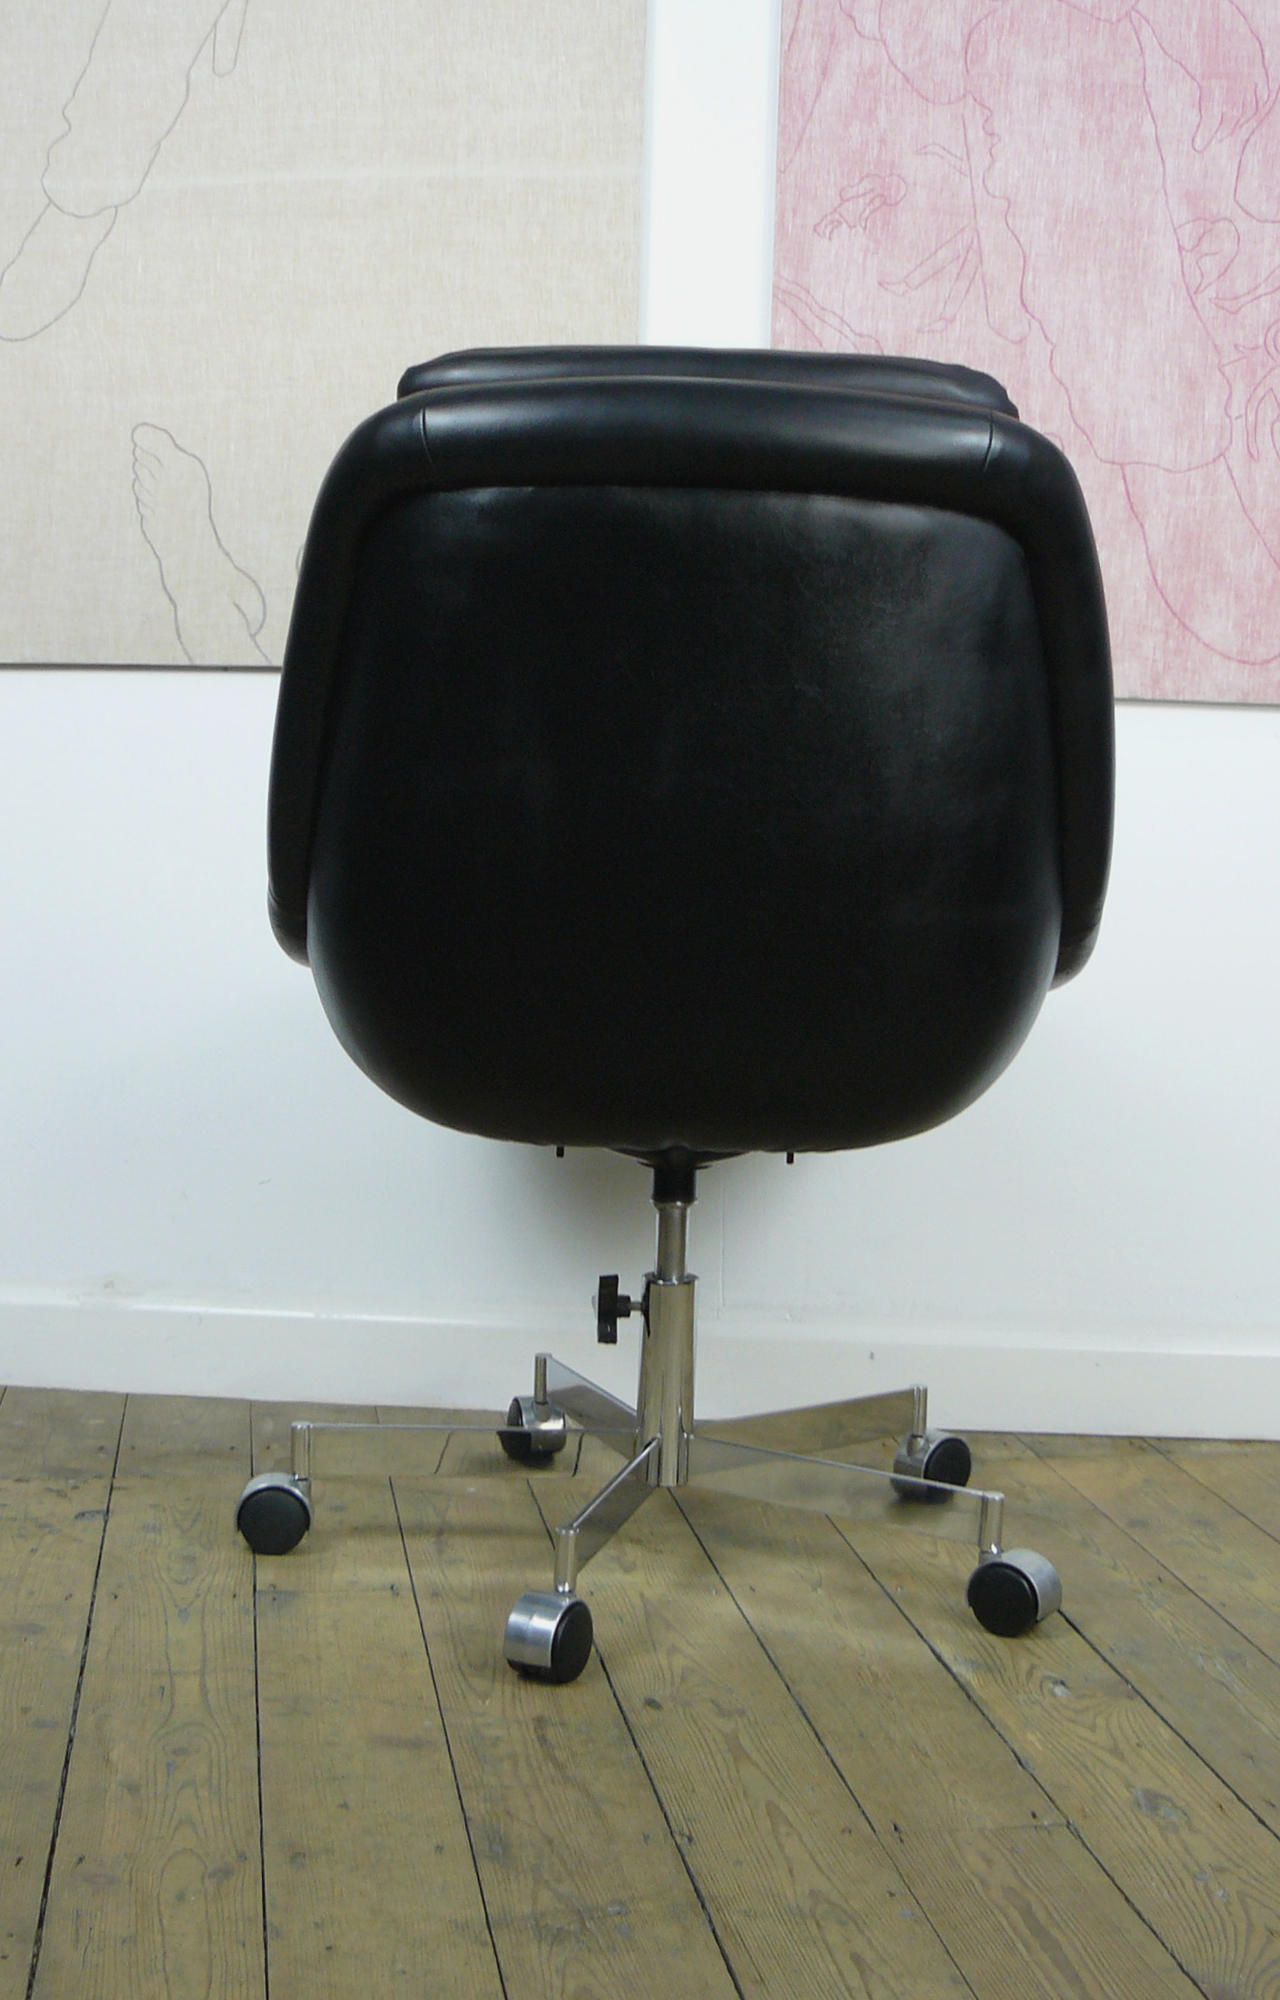 chair covers store near me wheelchair lift for van slick looking vintage 1970s black office mint